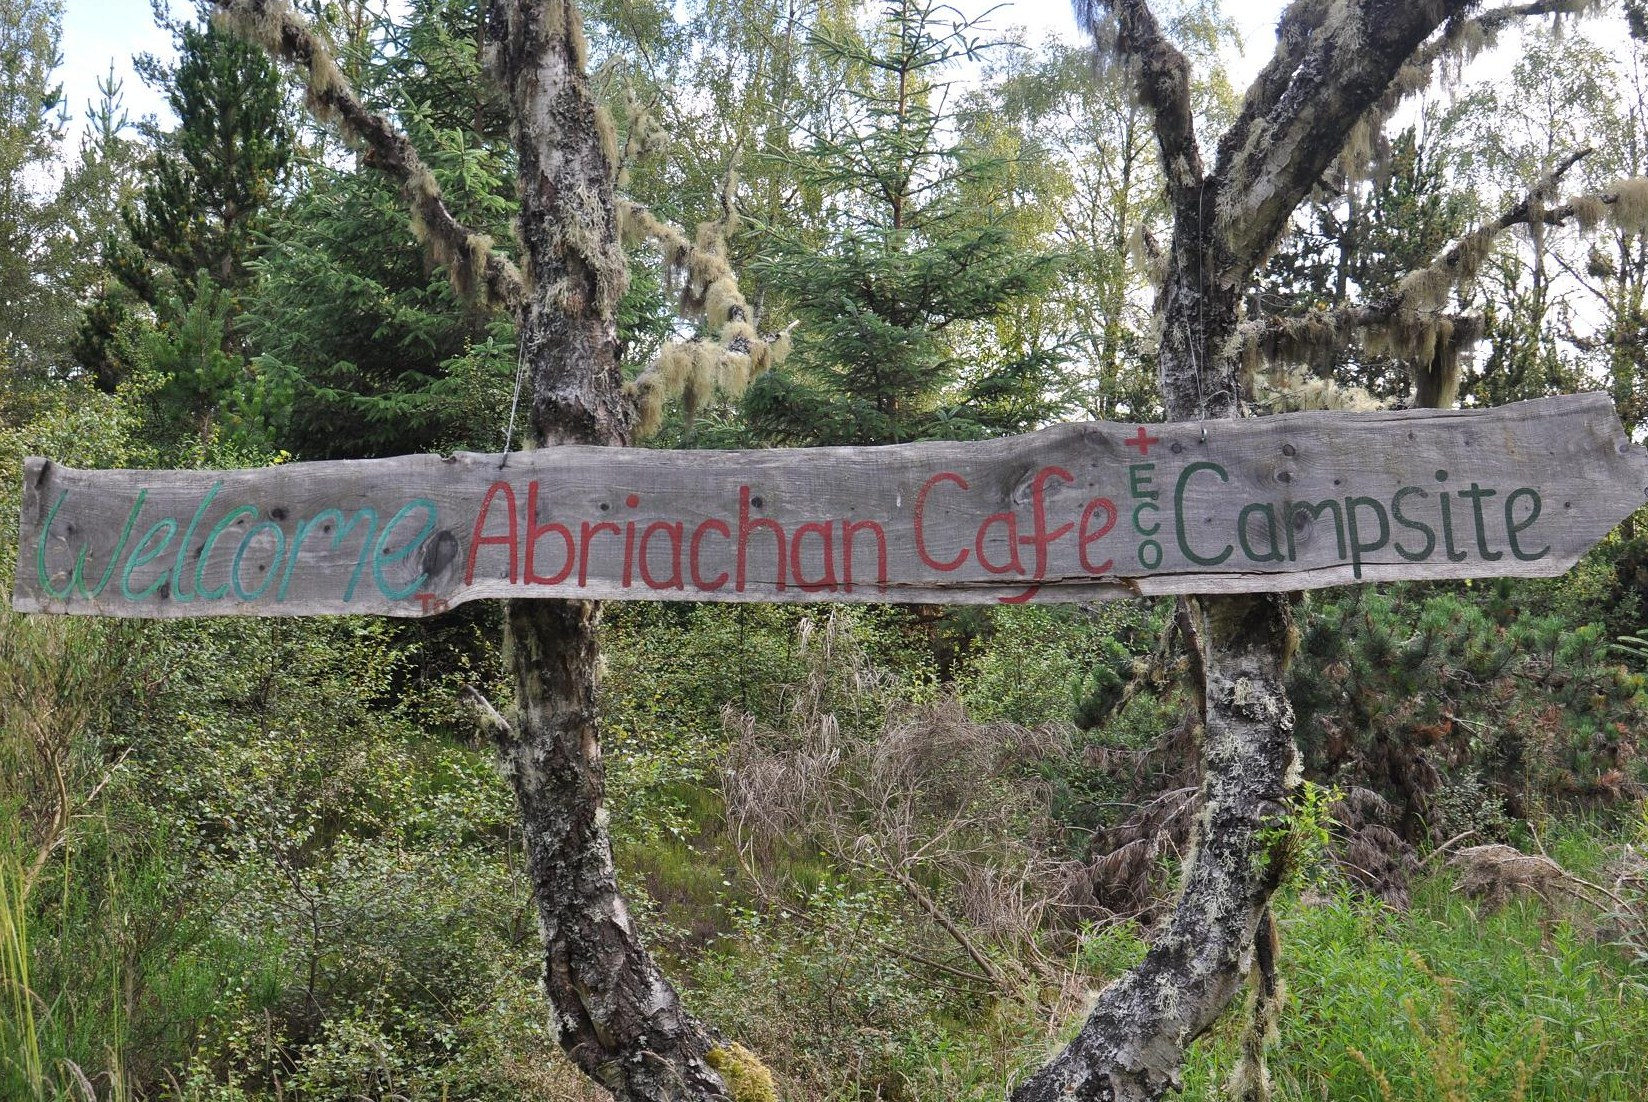 The sign at the entrance to the Abriachan Campsite and Cafe